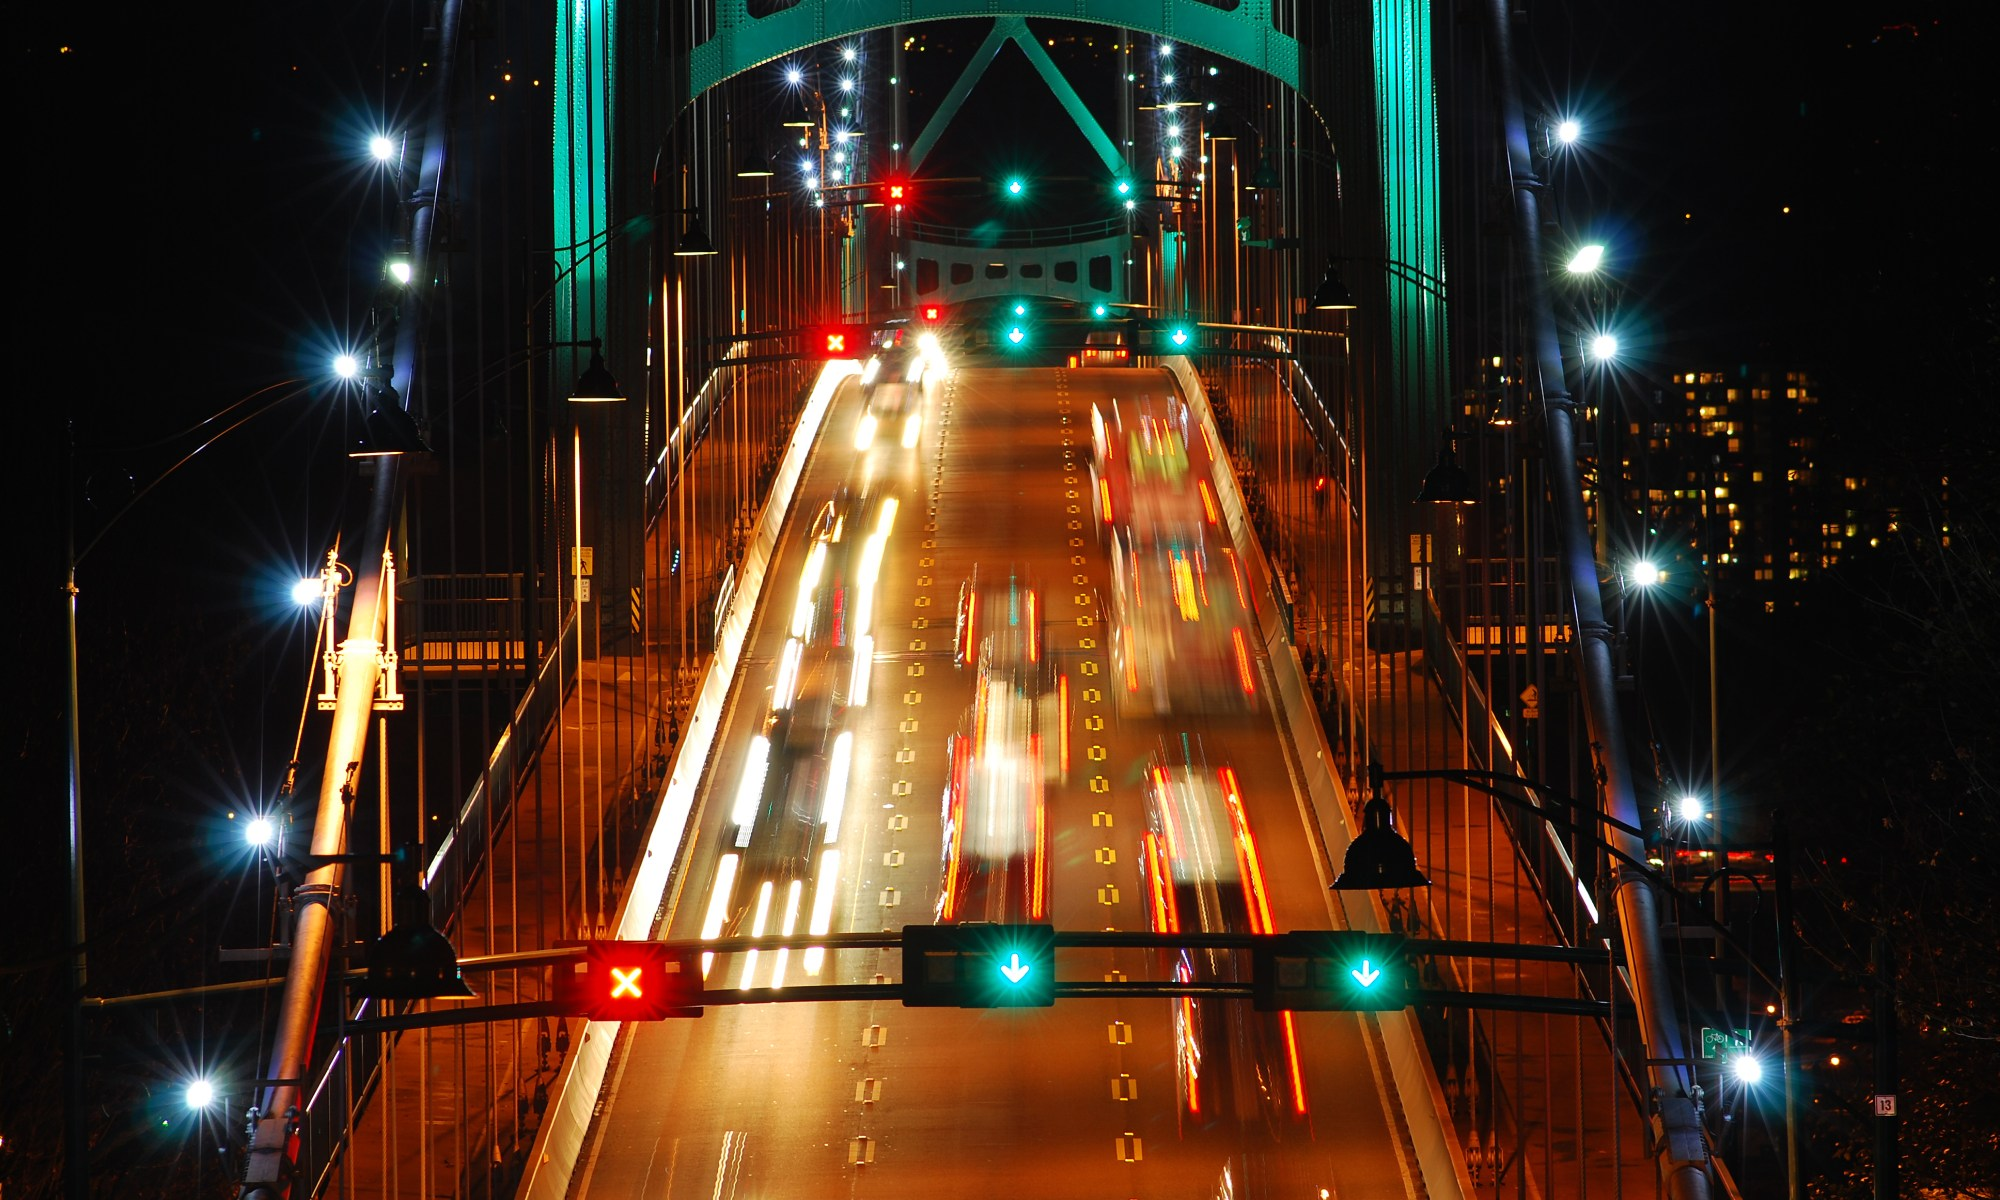 Lions Gate Bridge - Born under a lucky star